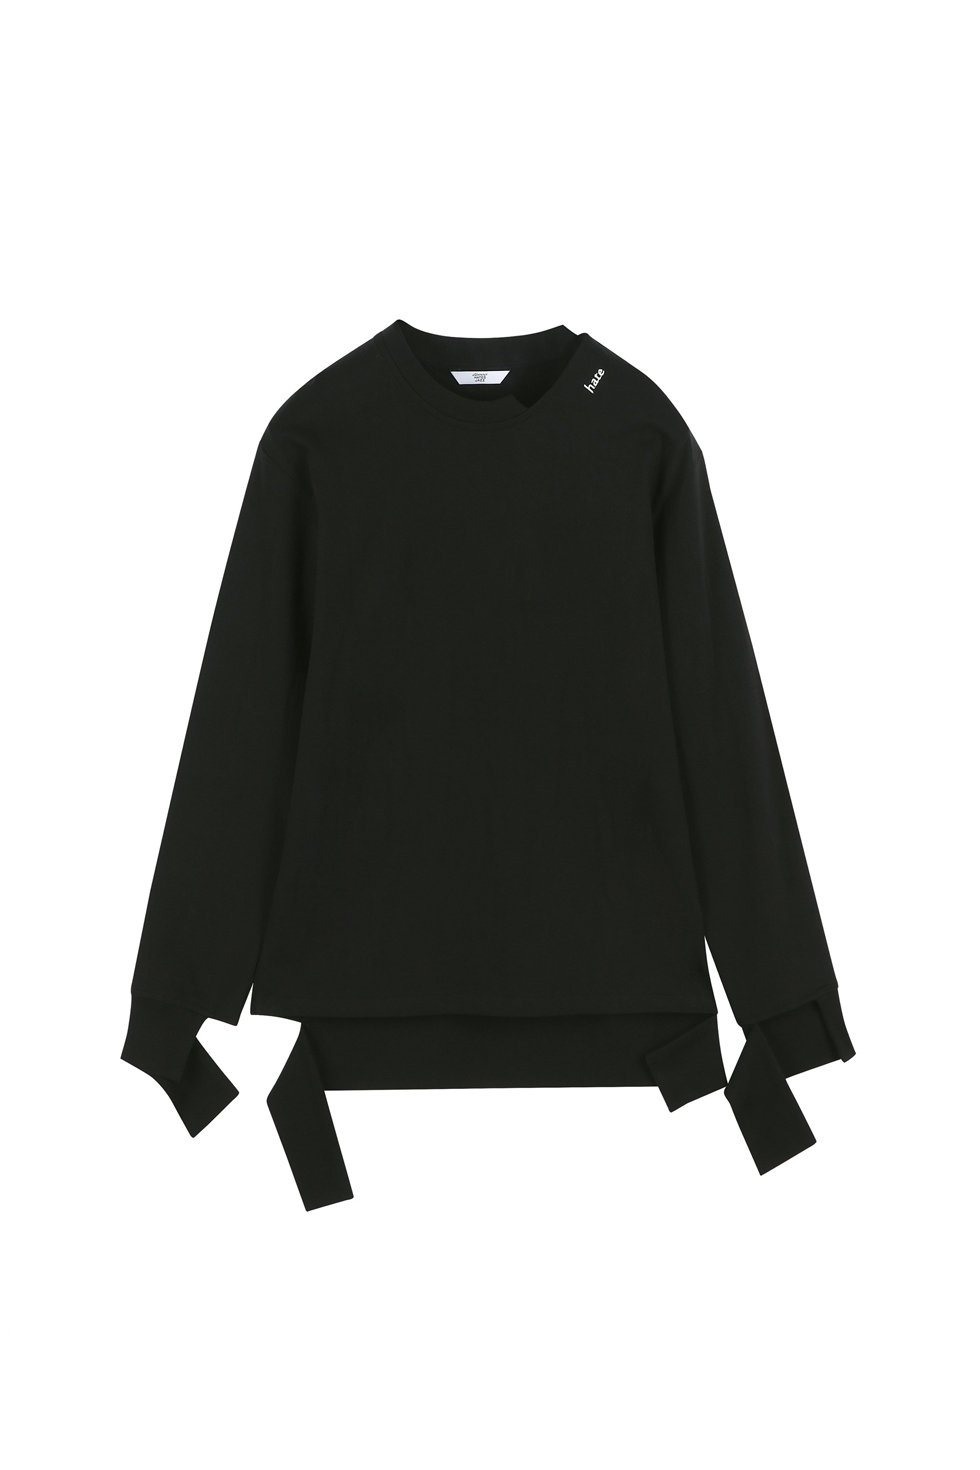 """HATE"" CUTTING LONG SLEEVES - BLACK"